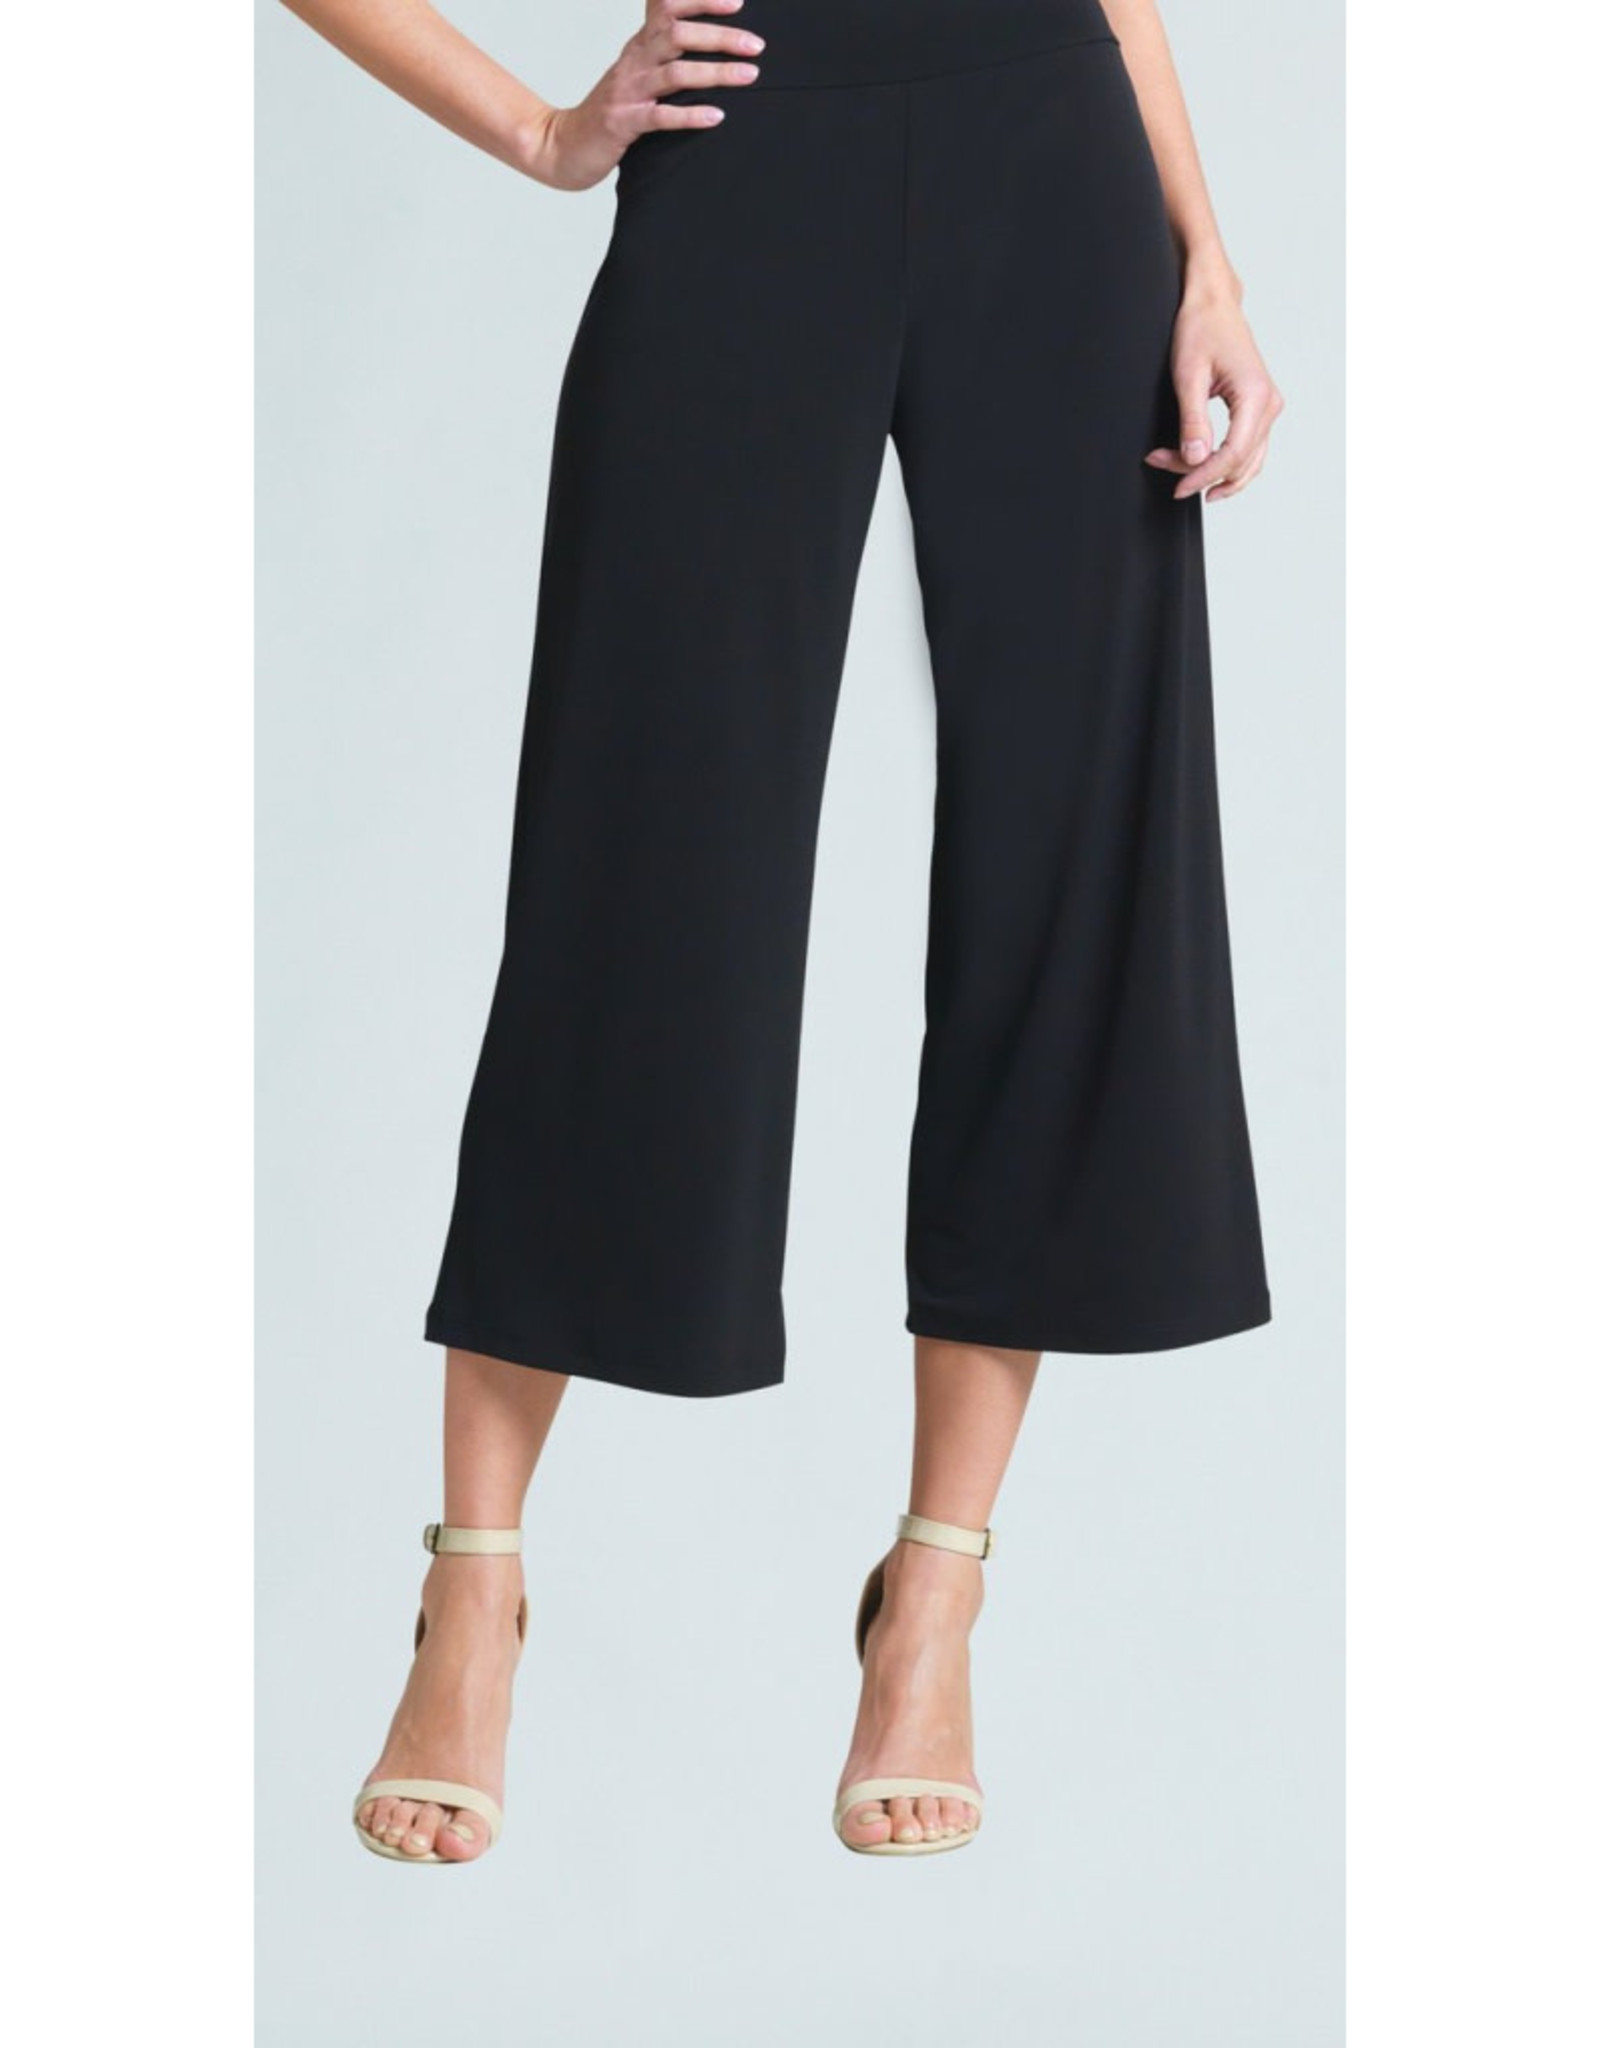 Pull On Cropped Gaucho Pant